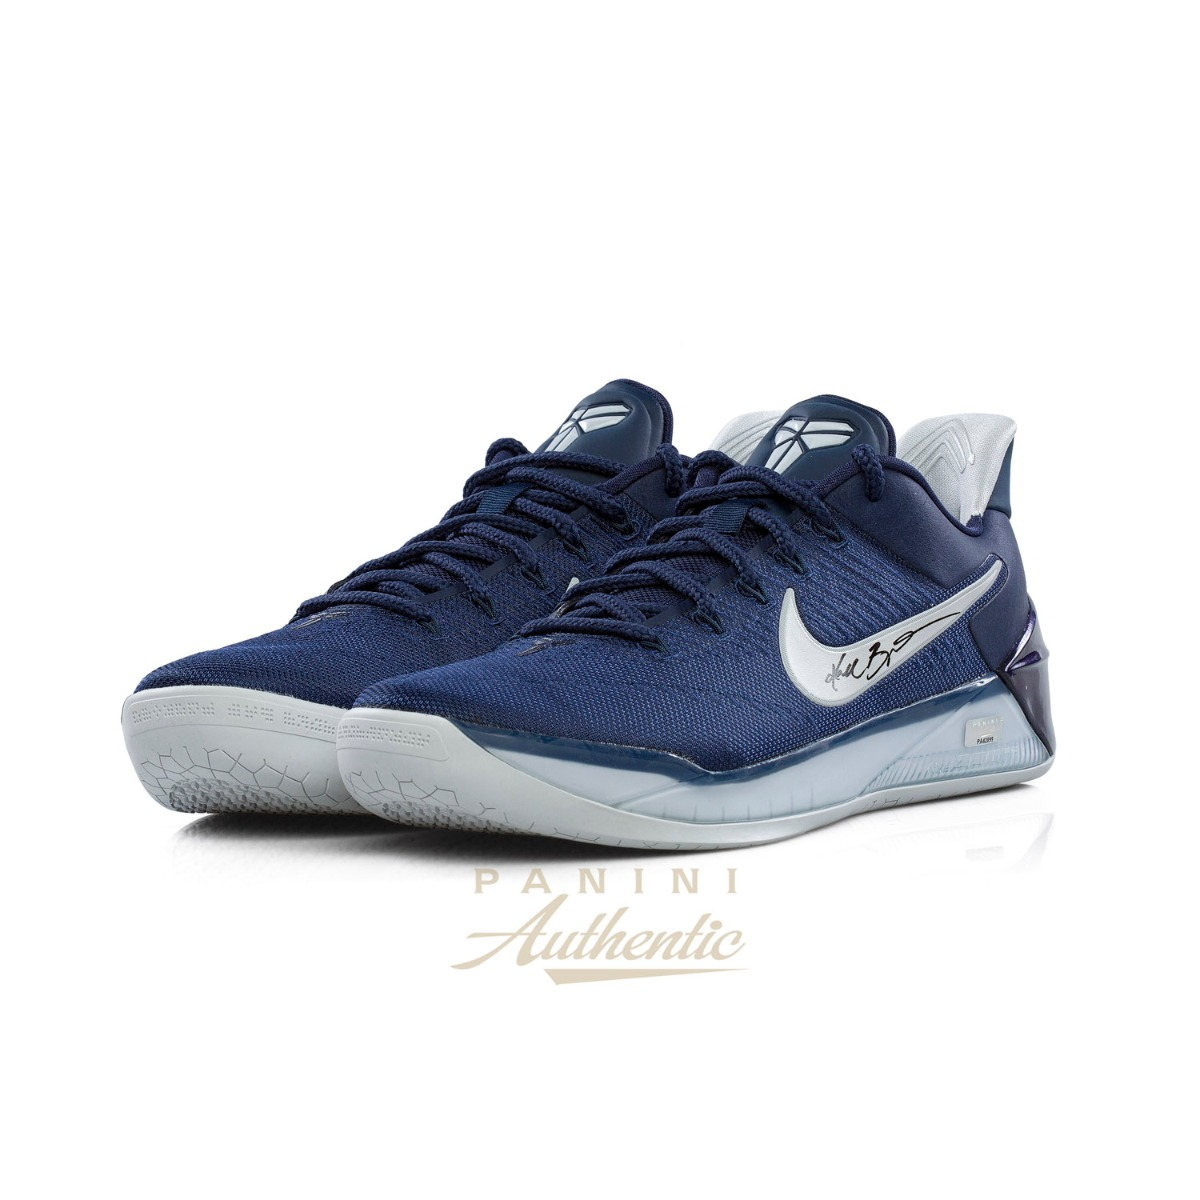 sports shoes 8707f 684bb Kobe Bryant Autographed Navy Blue Nike Kobe A.D. Shoe ~Open ...